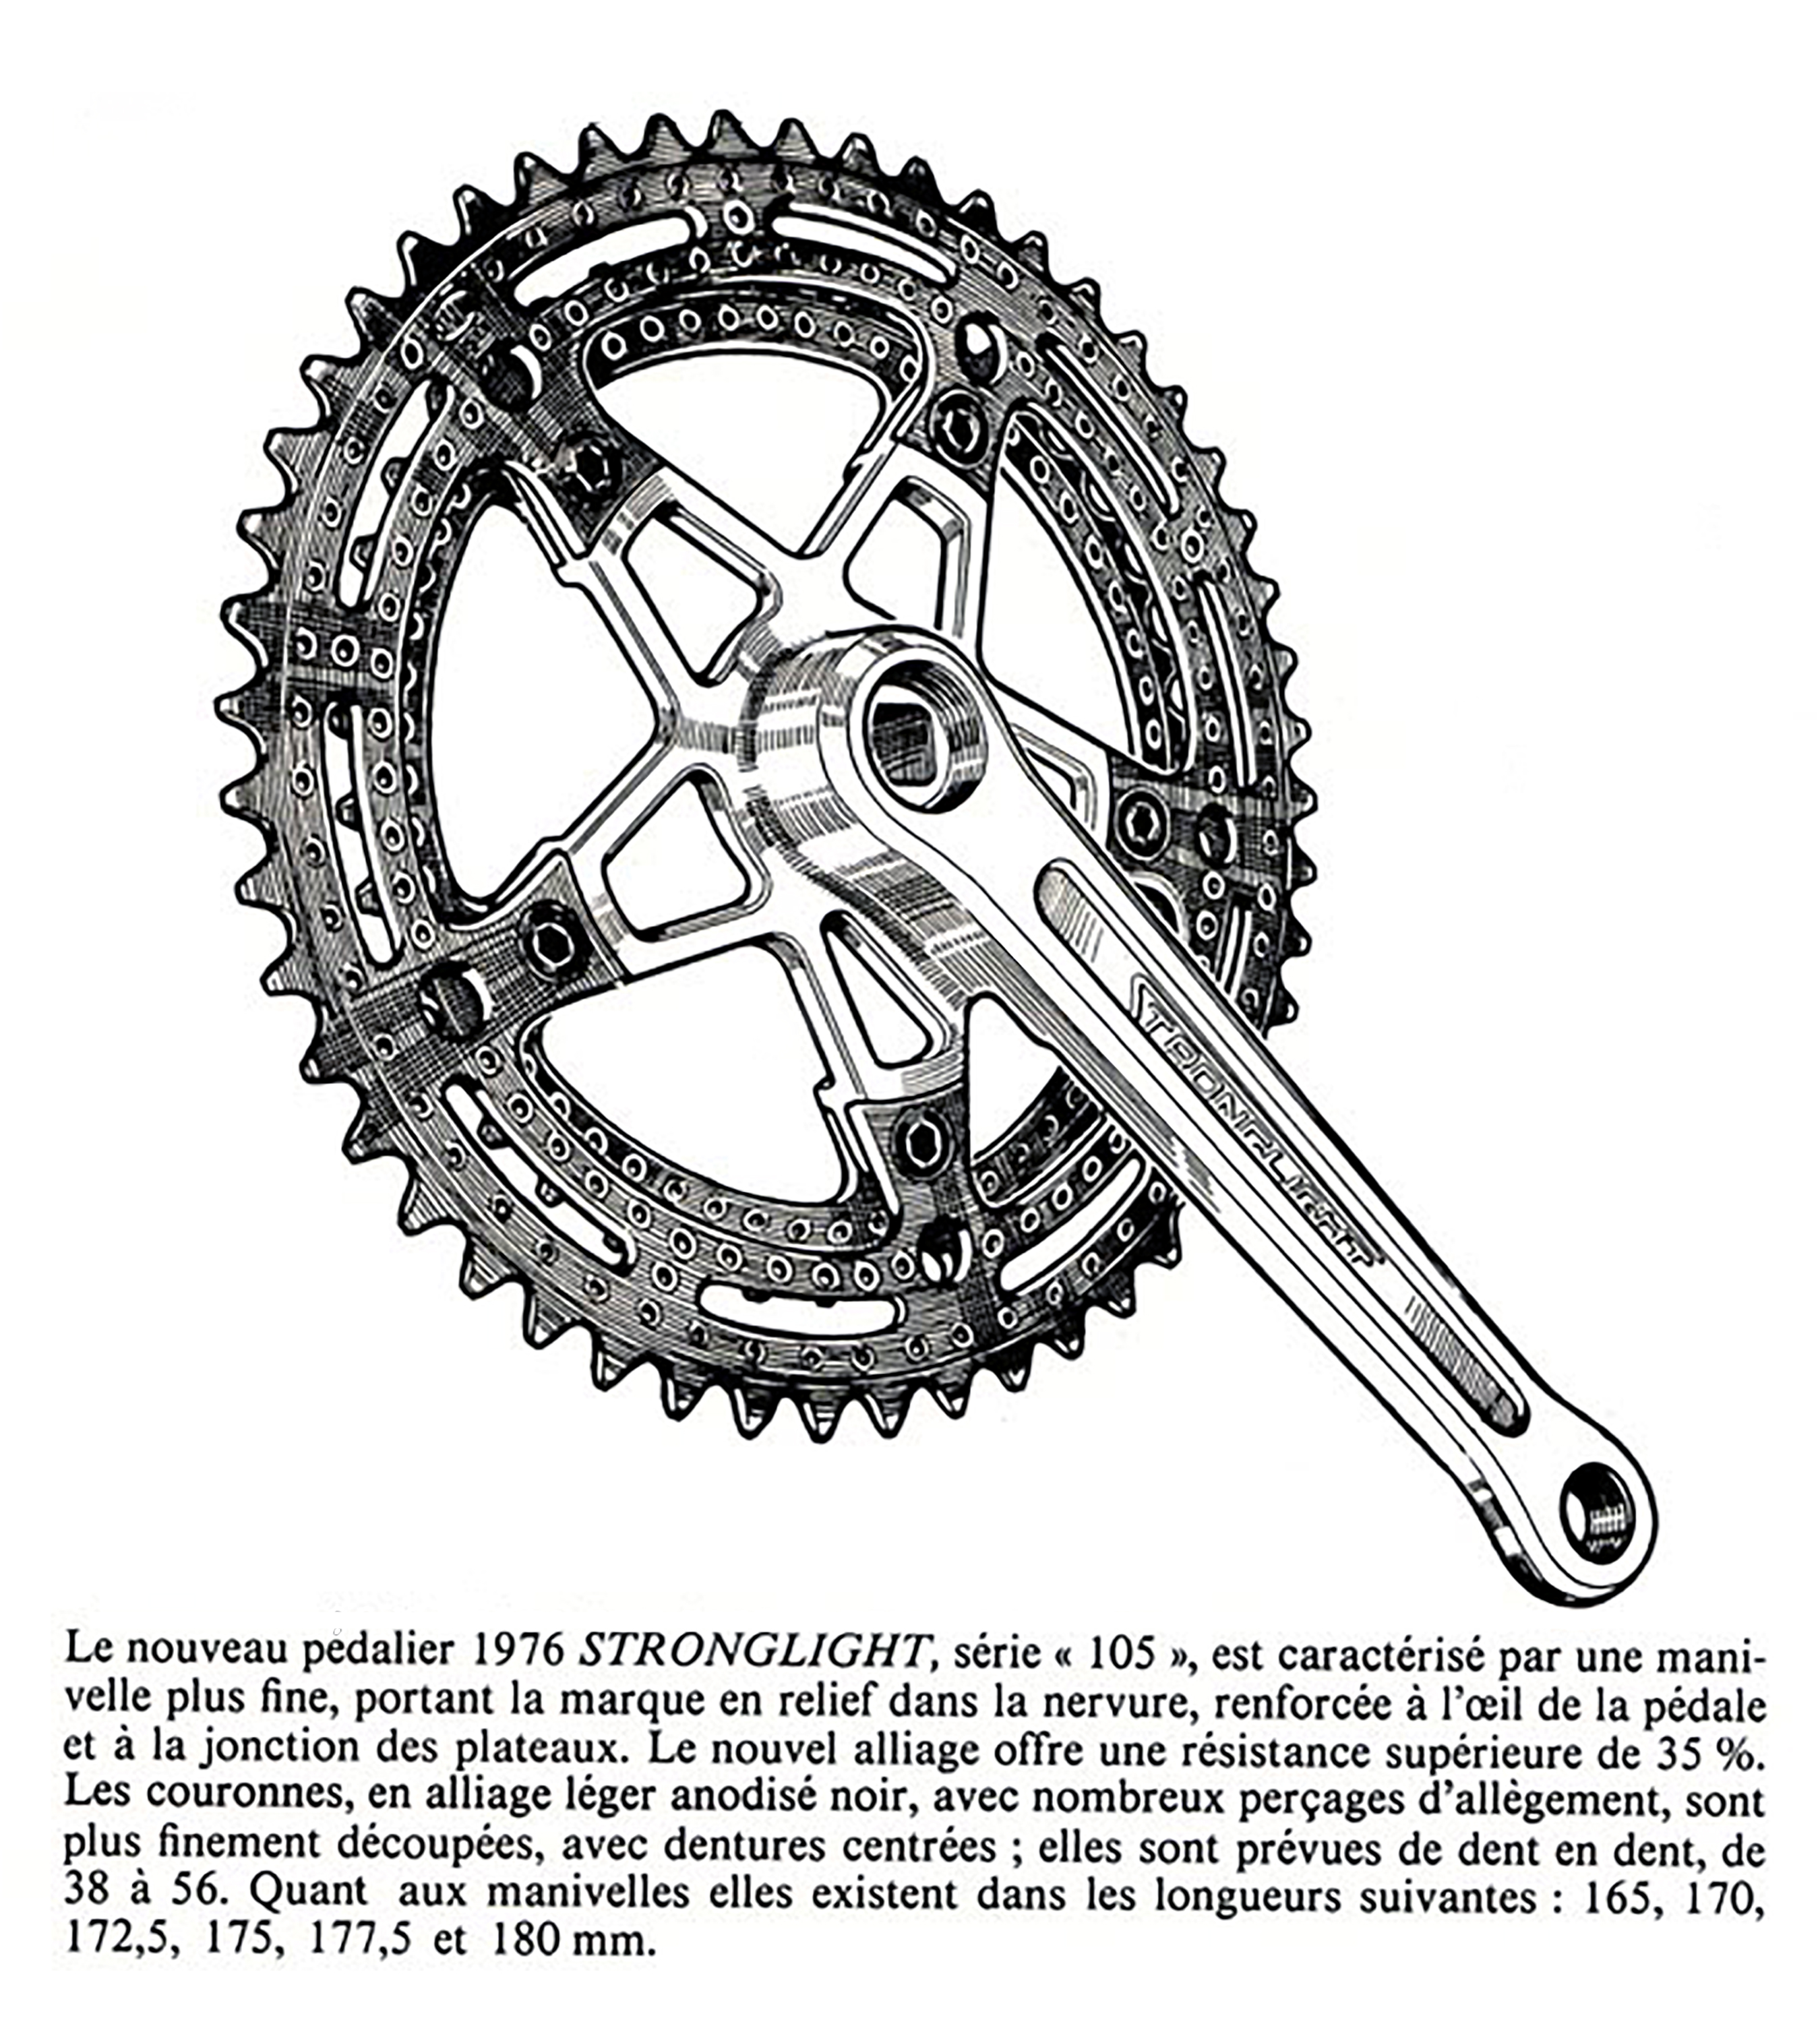 ebykr-stronglight-model-105-double-crankset-1976-daniel-rebour